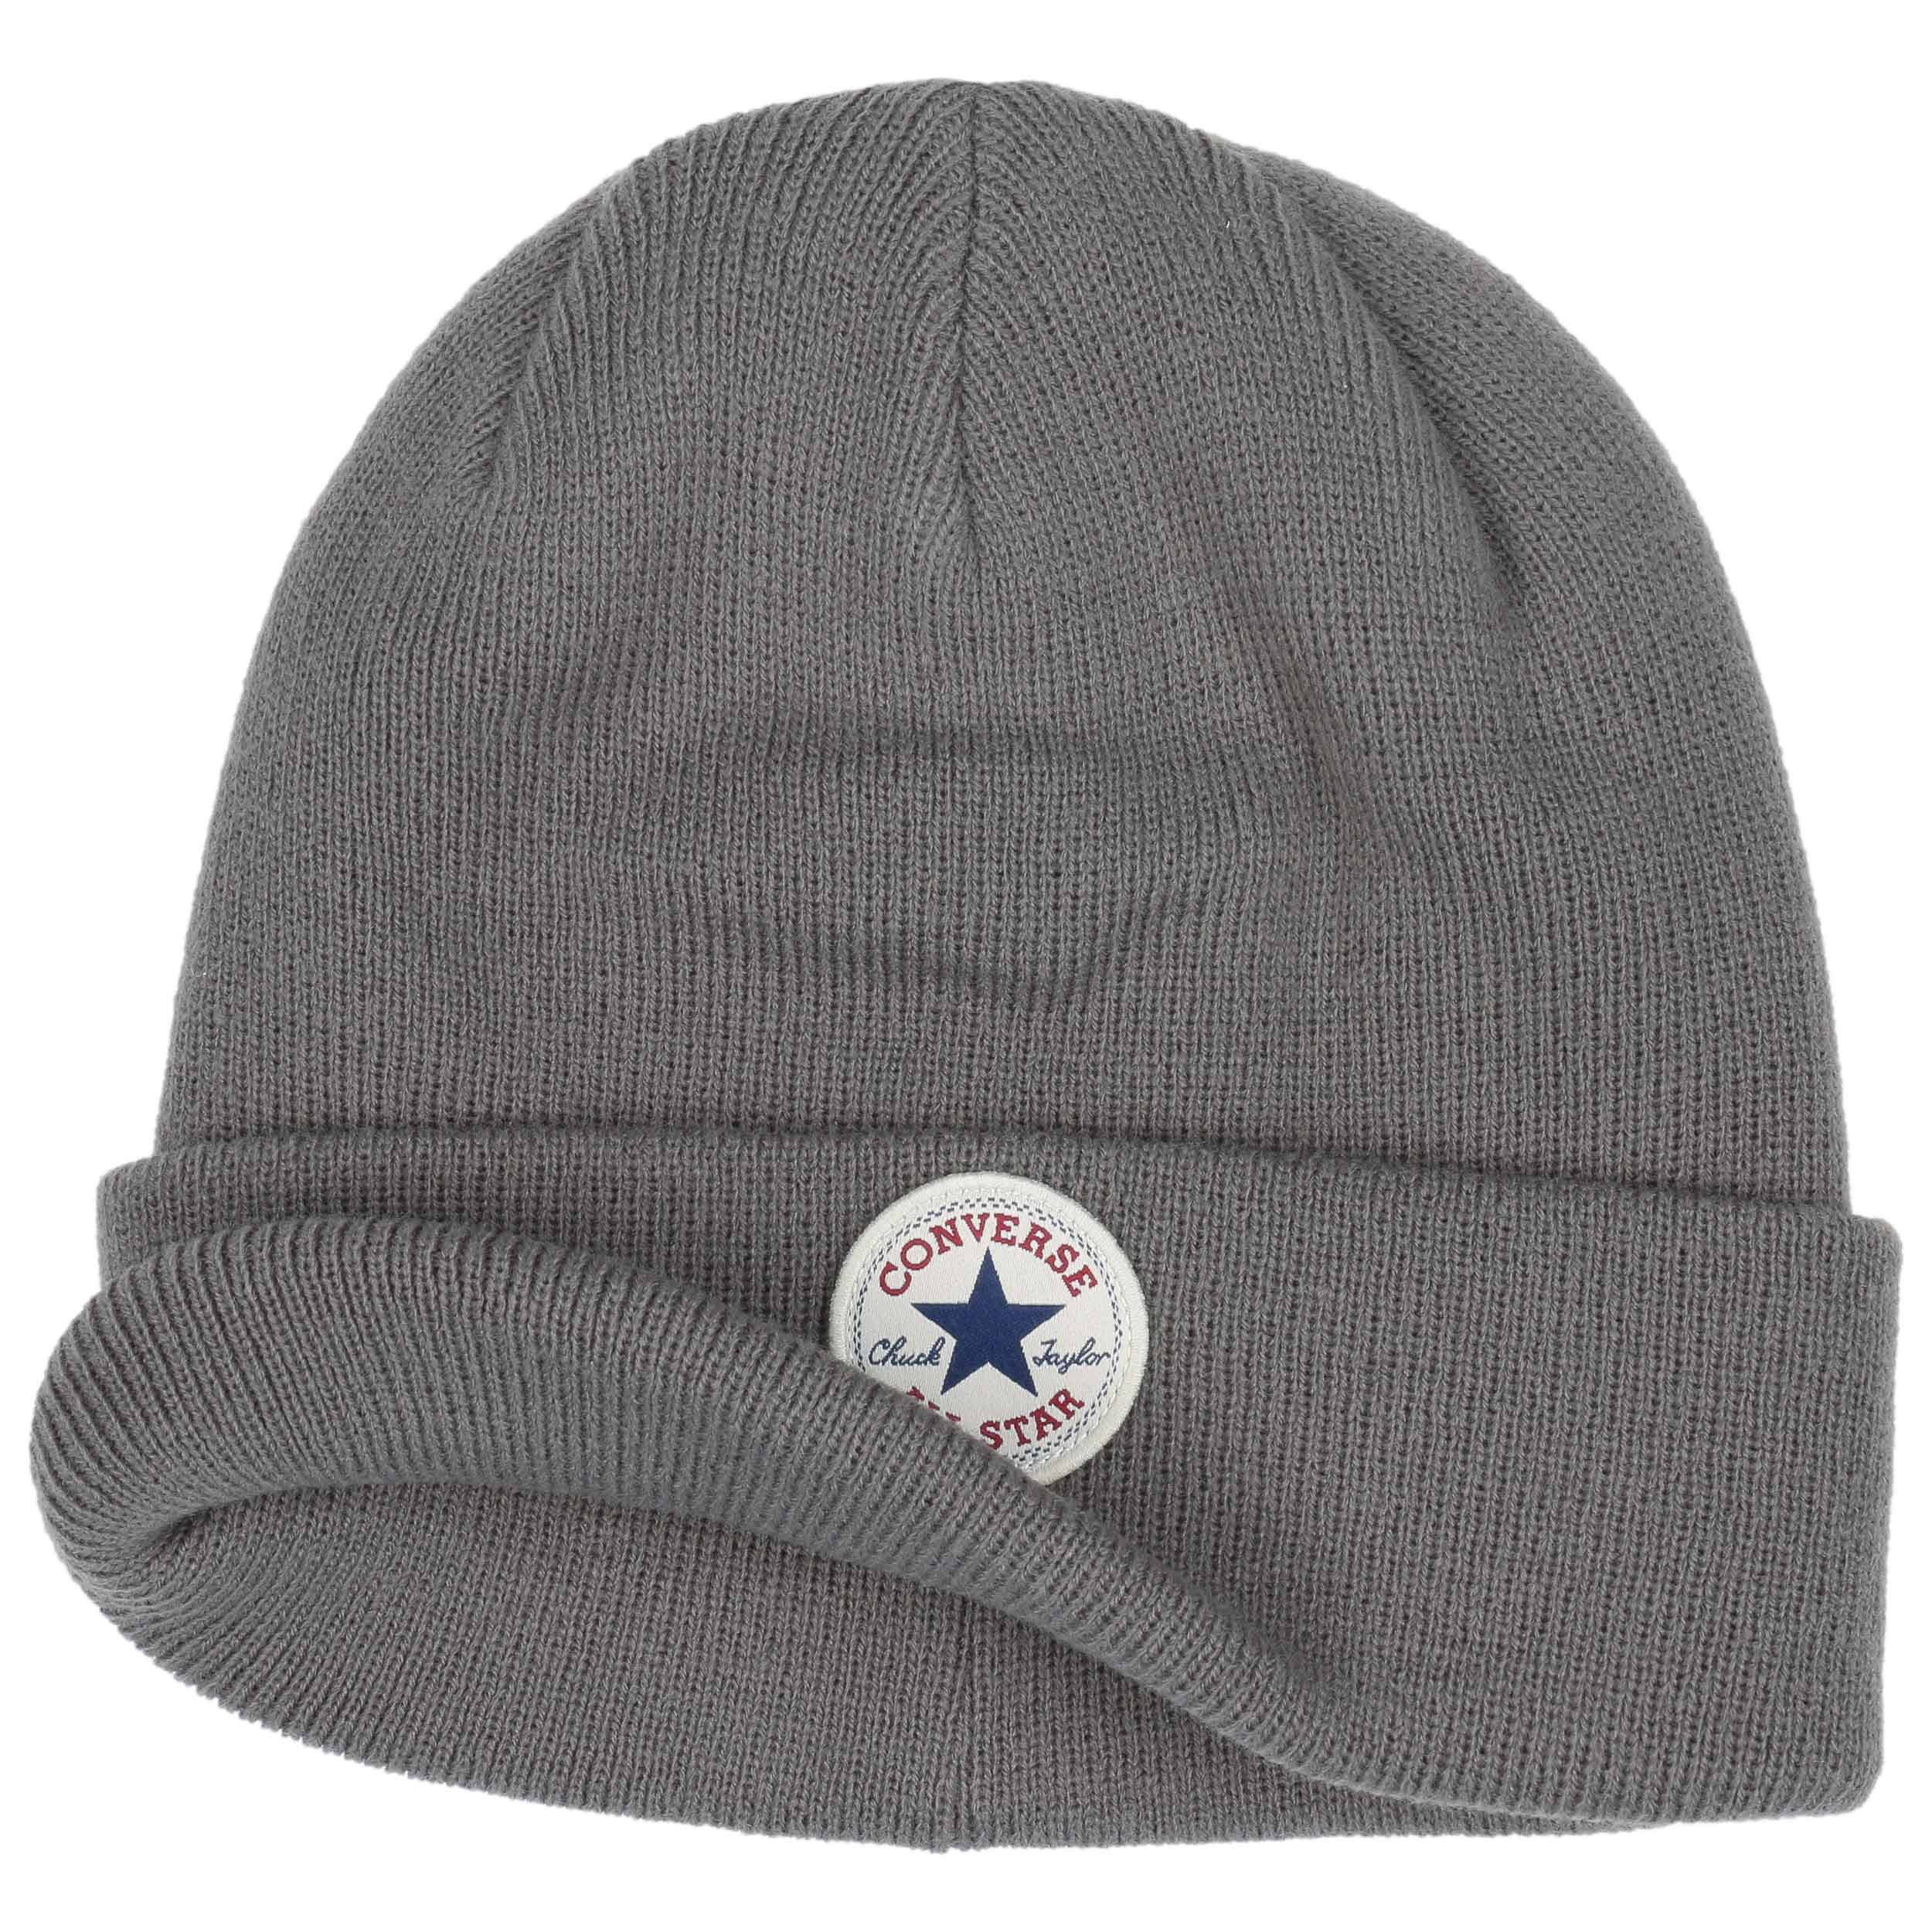 Core Beanie by Converse, GBP 18,95 --> Hats, caps ...